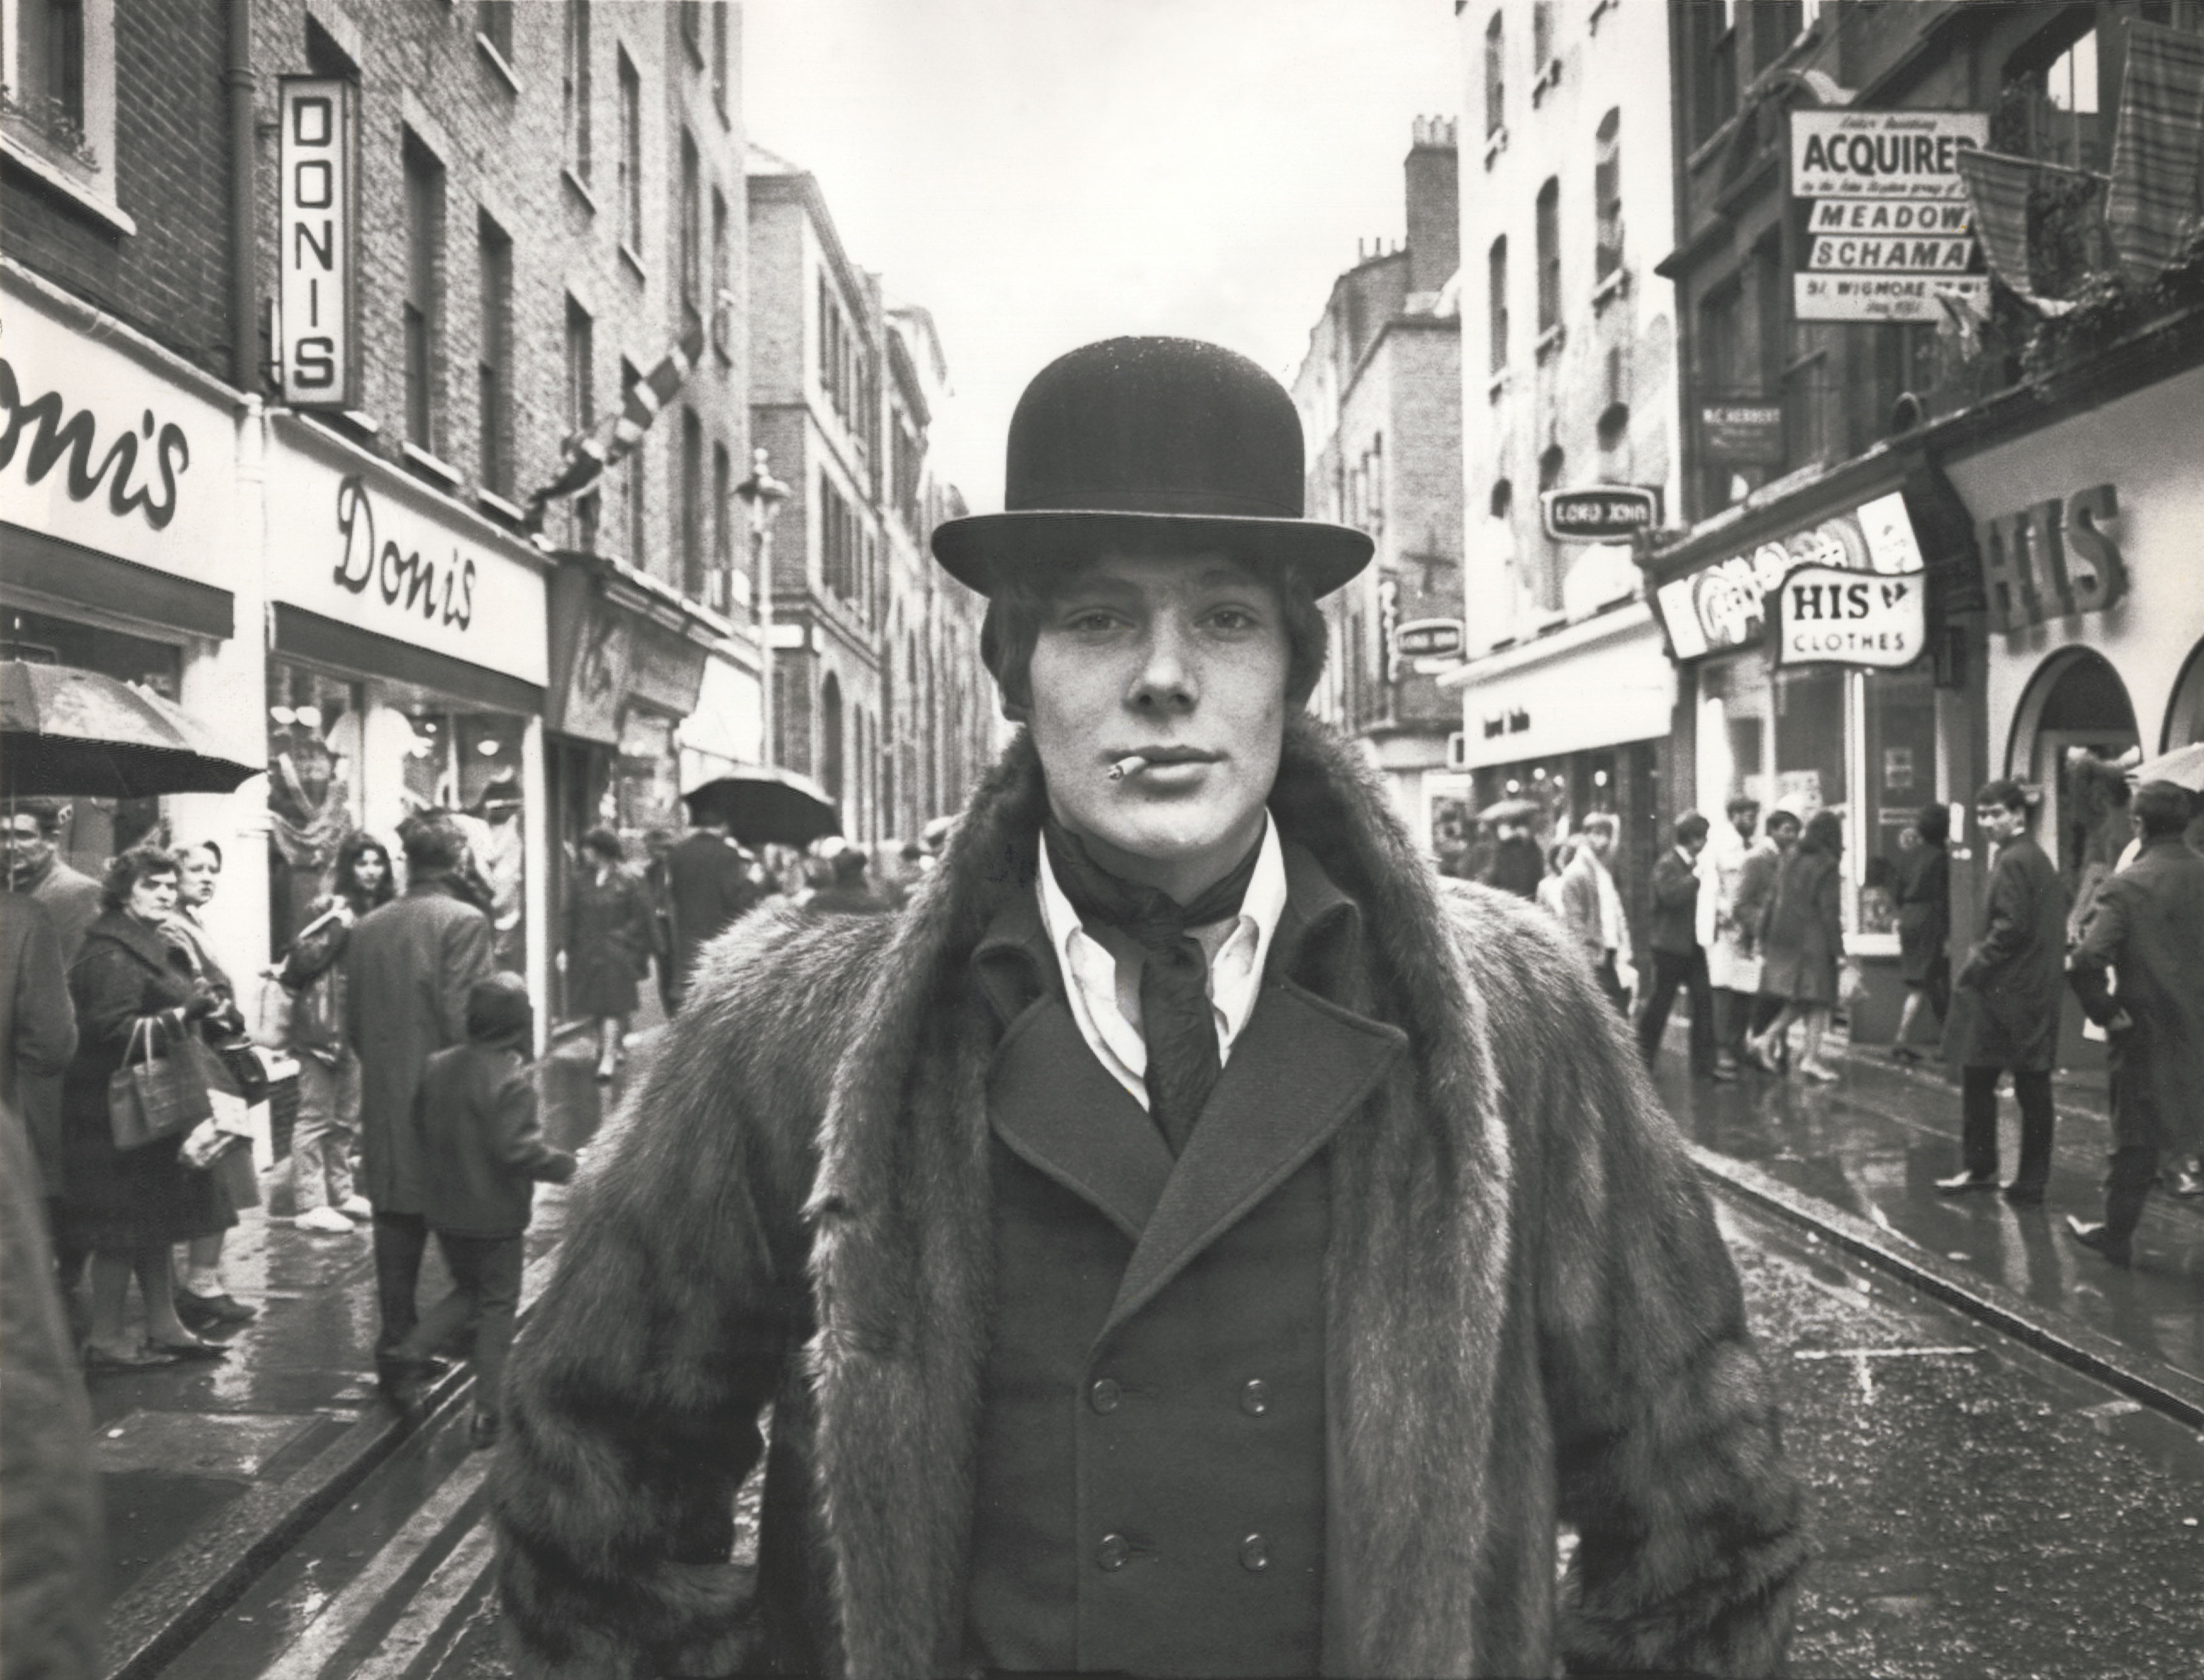 Photo of a London Dandy on Carnaby Street, London